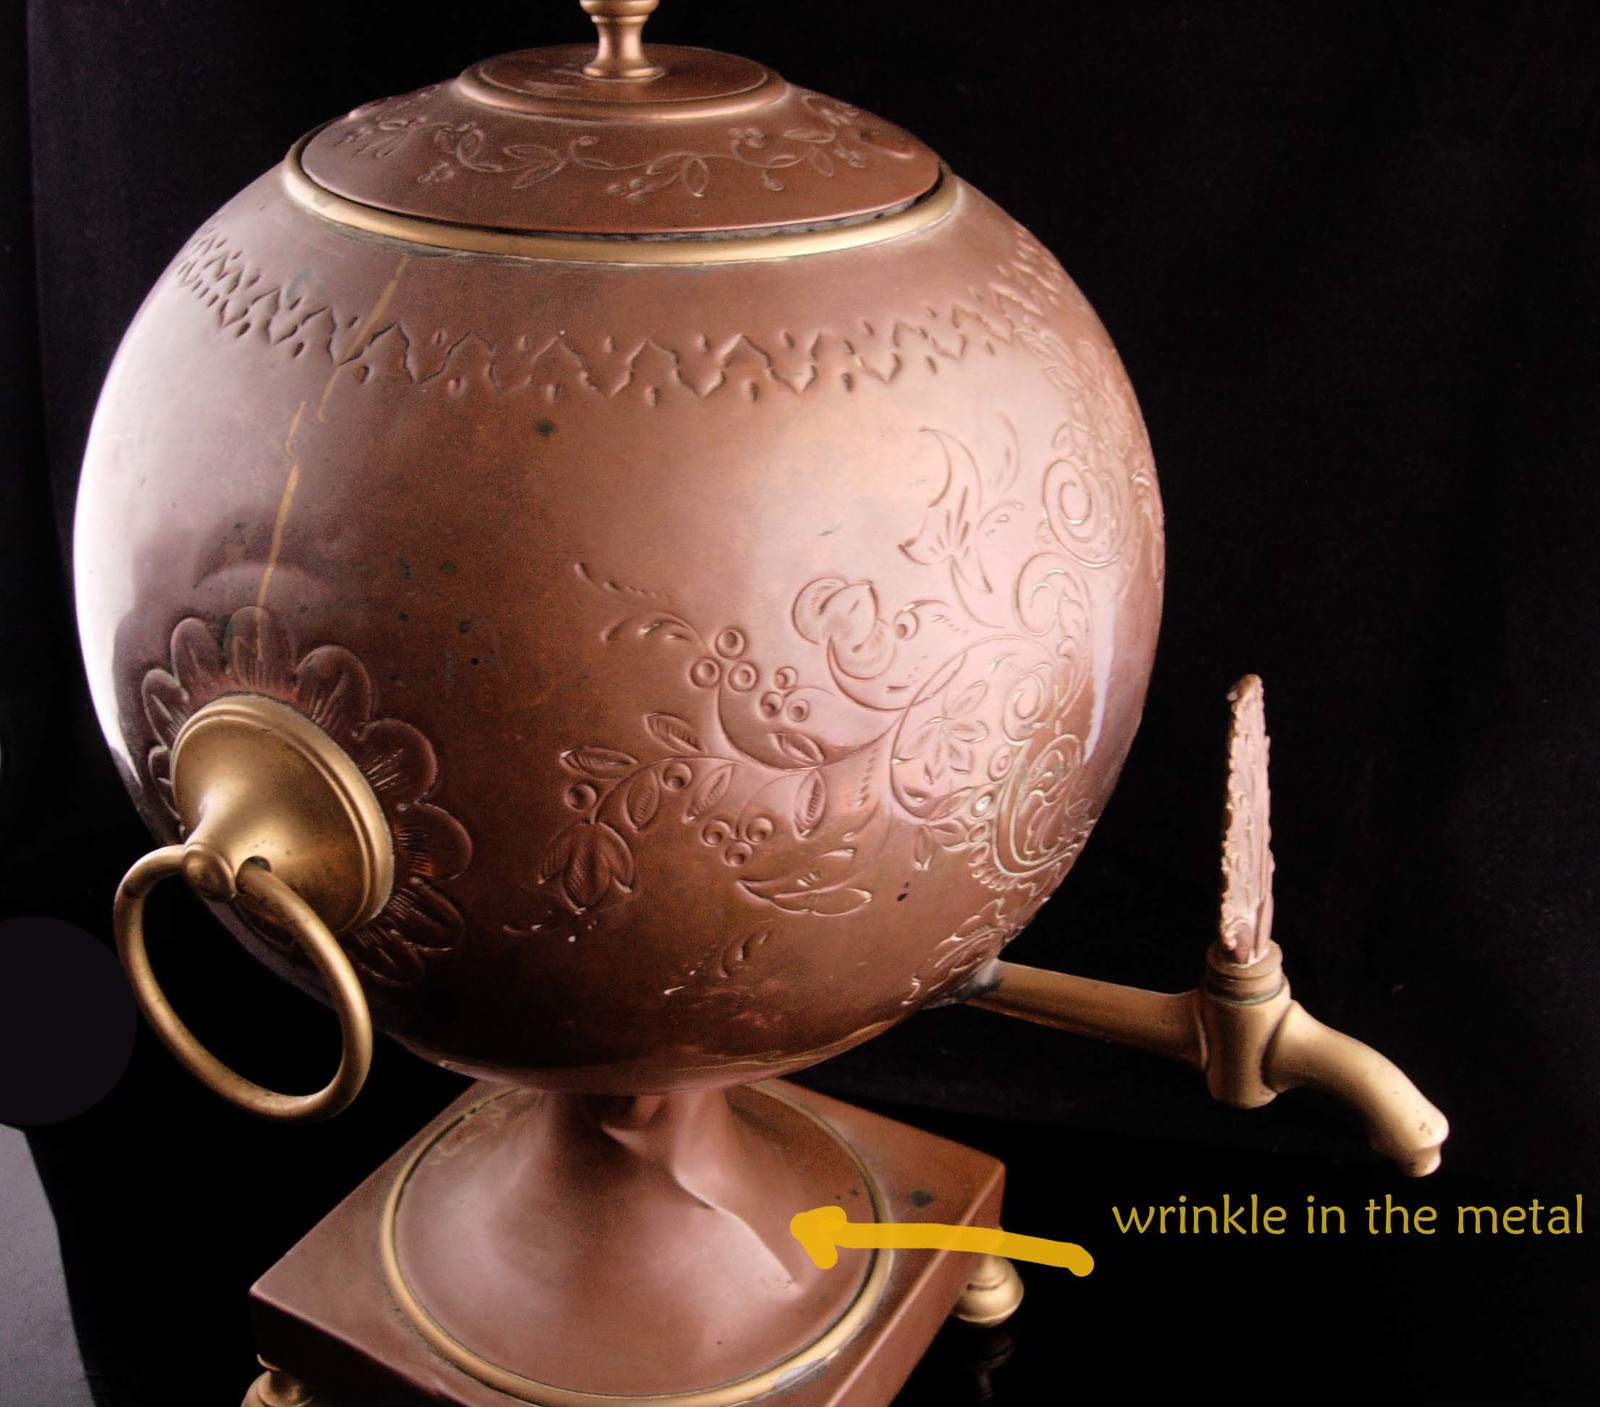 Antique Samovar - 1800's teapot - steampunk design - Russian Copper kettle with